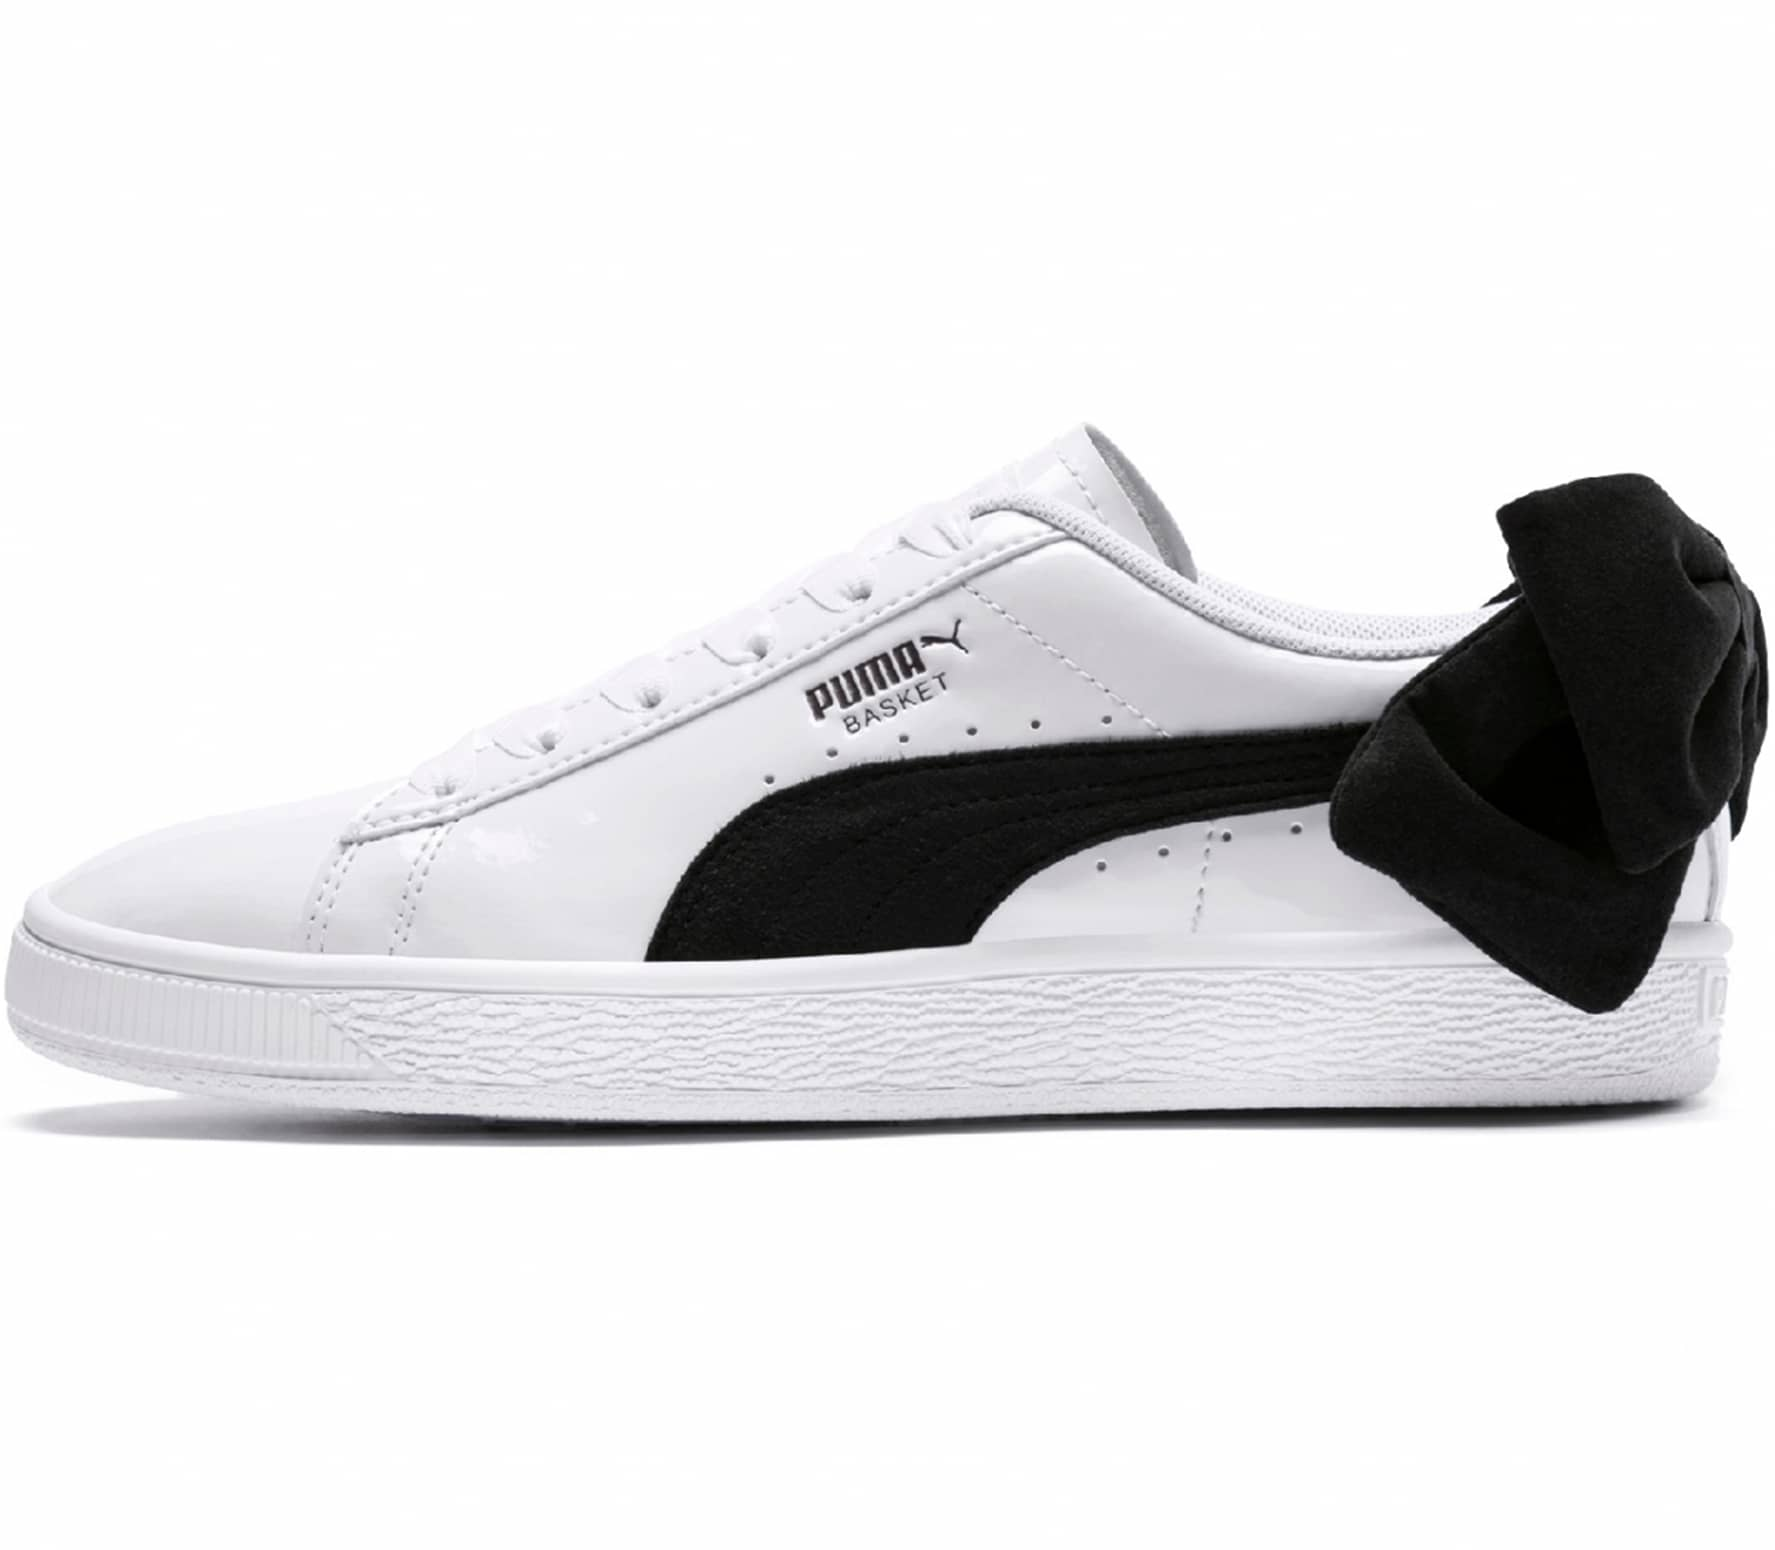 8e78bc25910 Puma Basket Bow SB women s trainers (white black) online kaufen ...